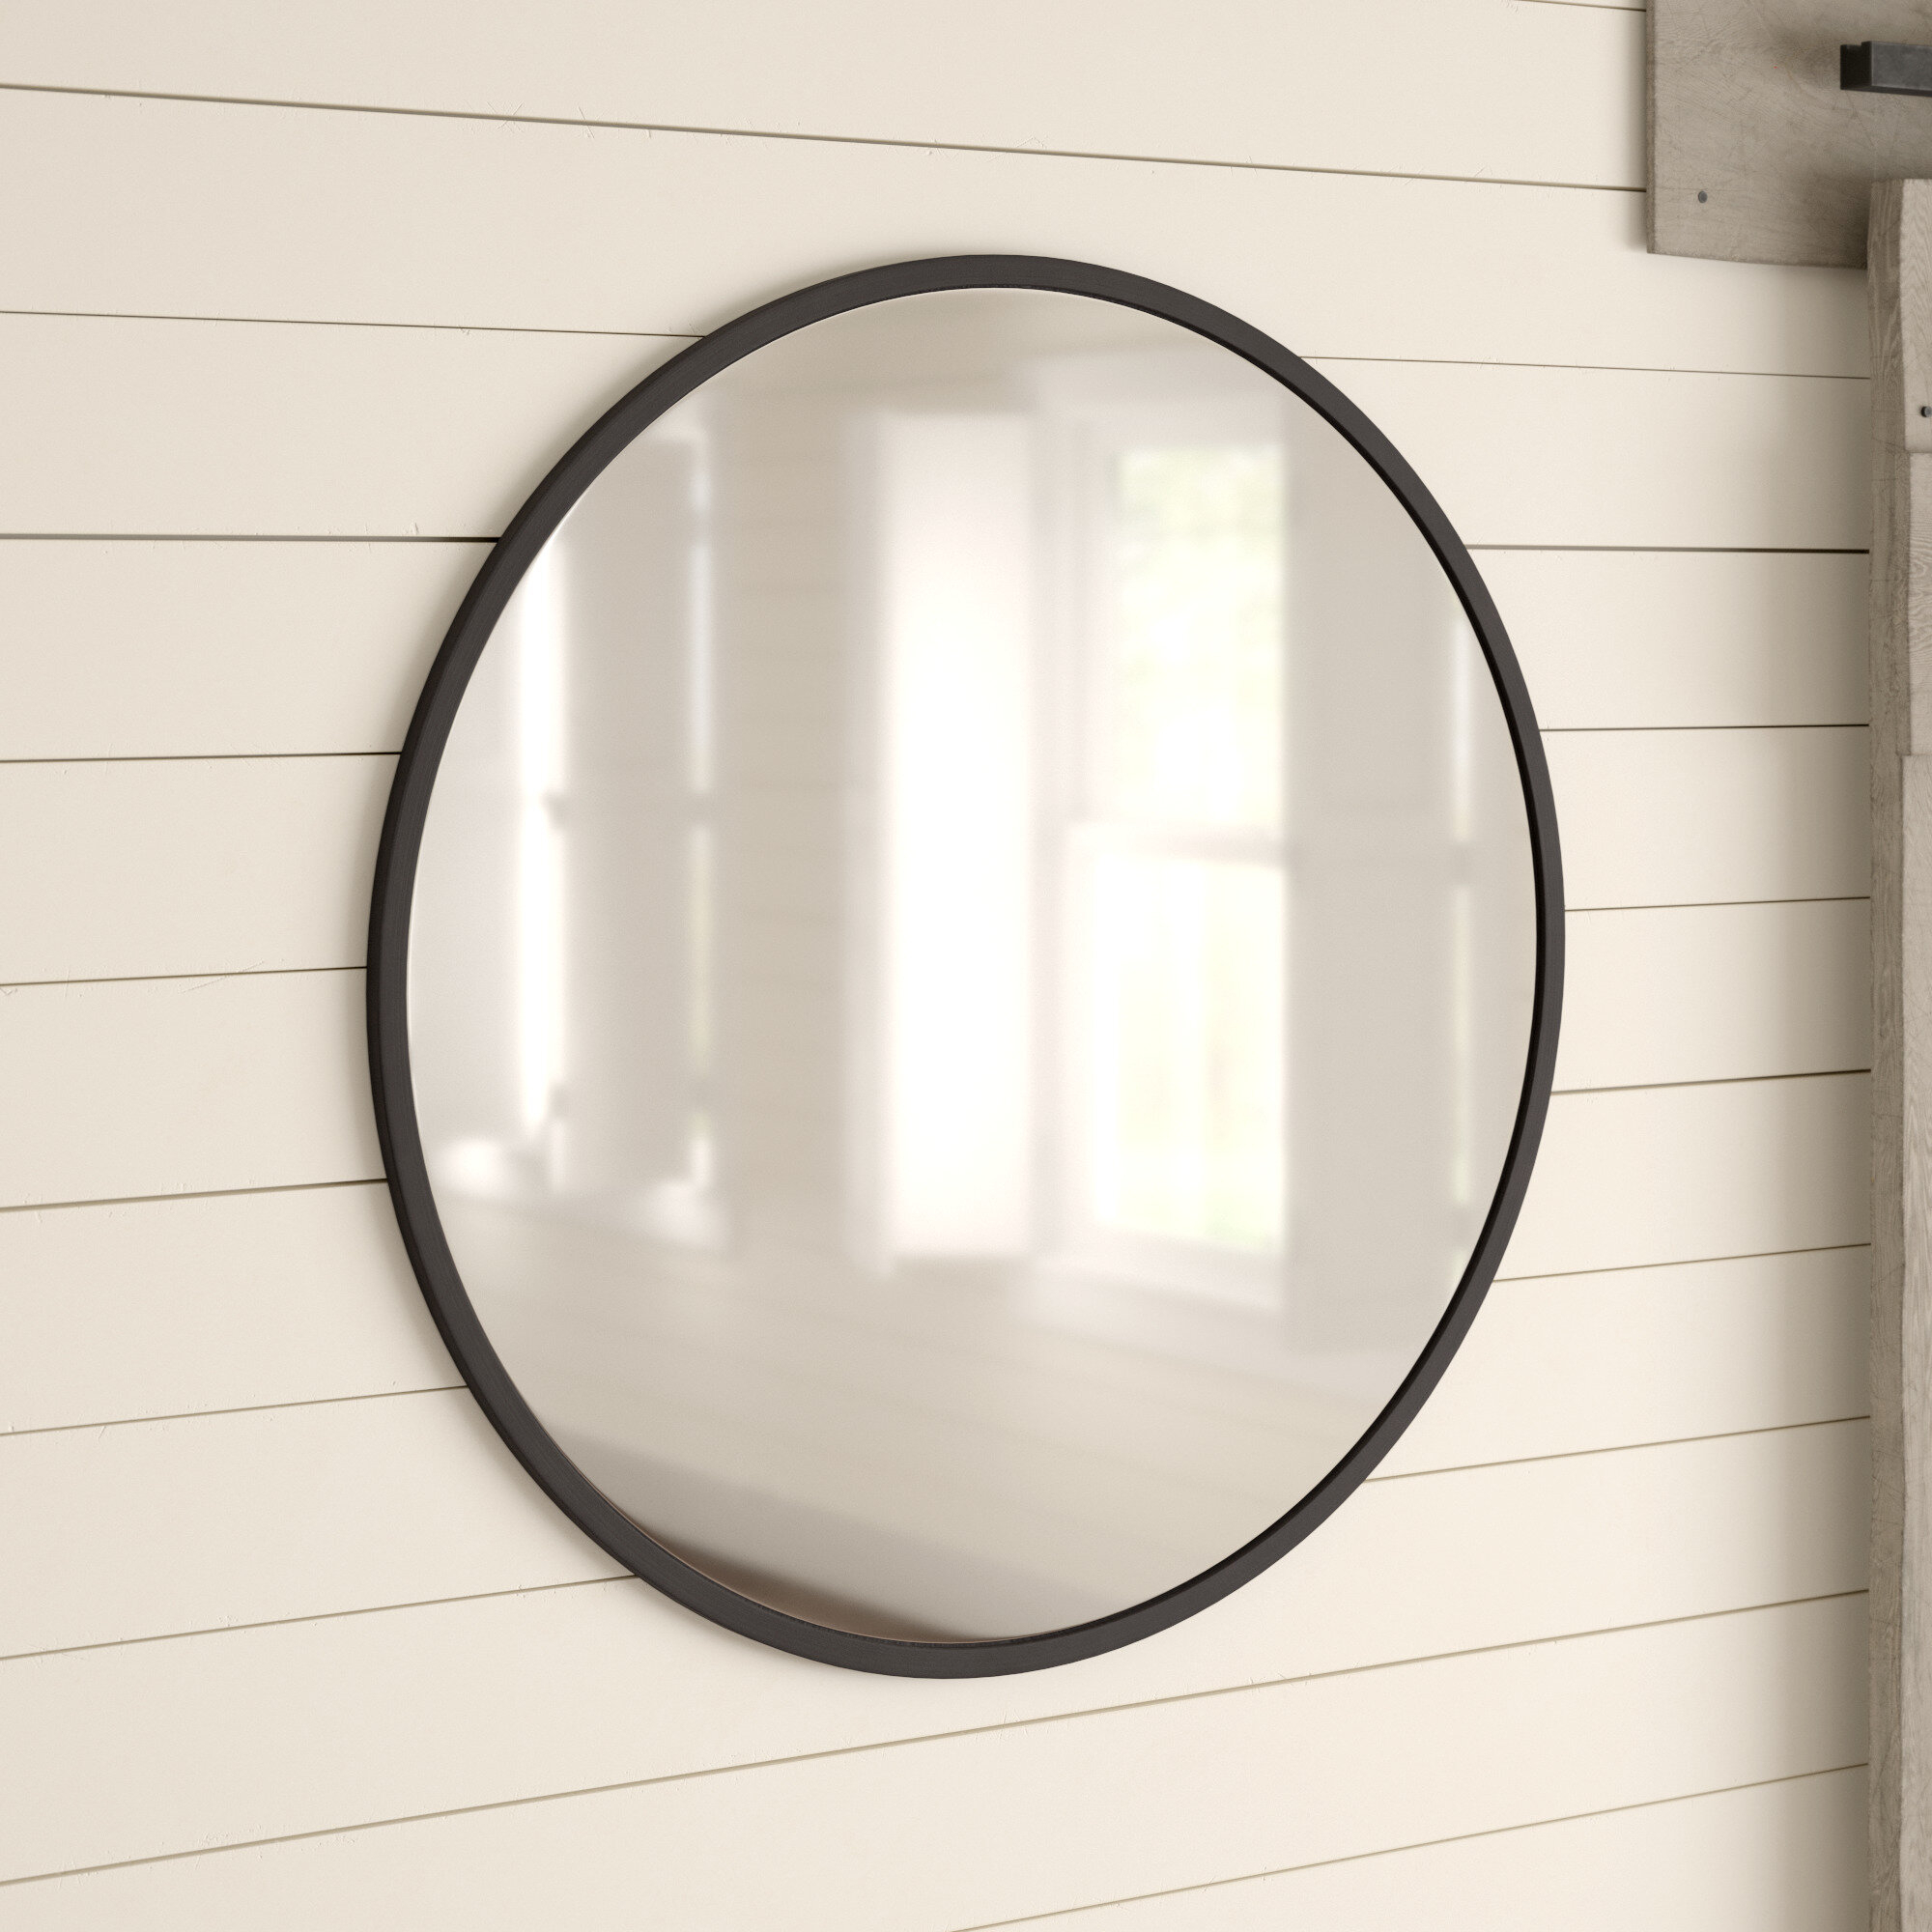 Umbra Hub Modern And Contemporary Accent Mirror Pertaining To Guidinha Modern & Contemporary Accent Mirrors (View 15 of 20)